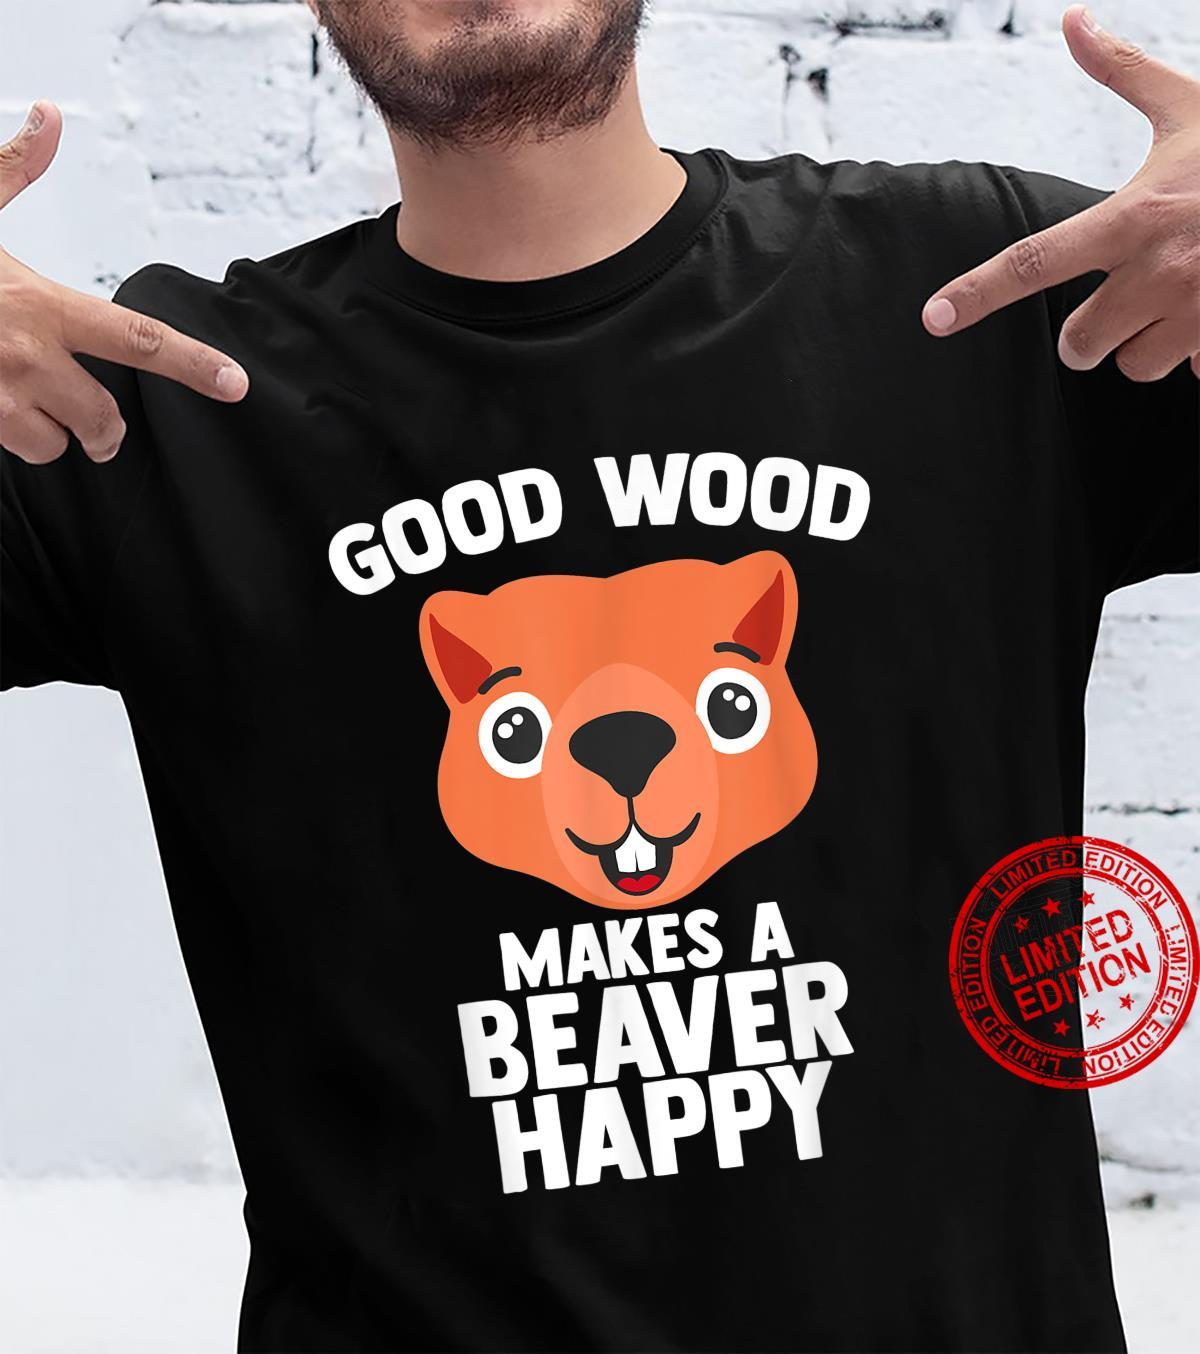 Good Wood Makes A Beaver Happy For Animal Rescuer Shirt